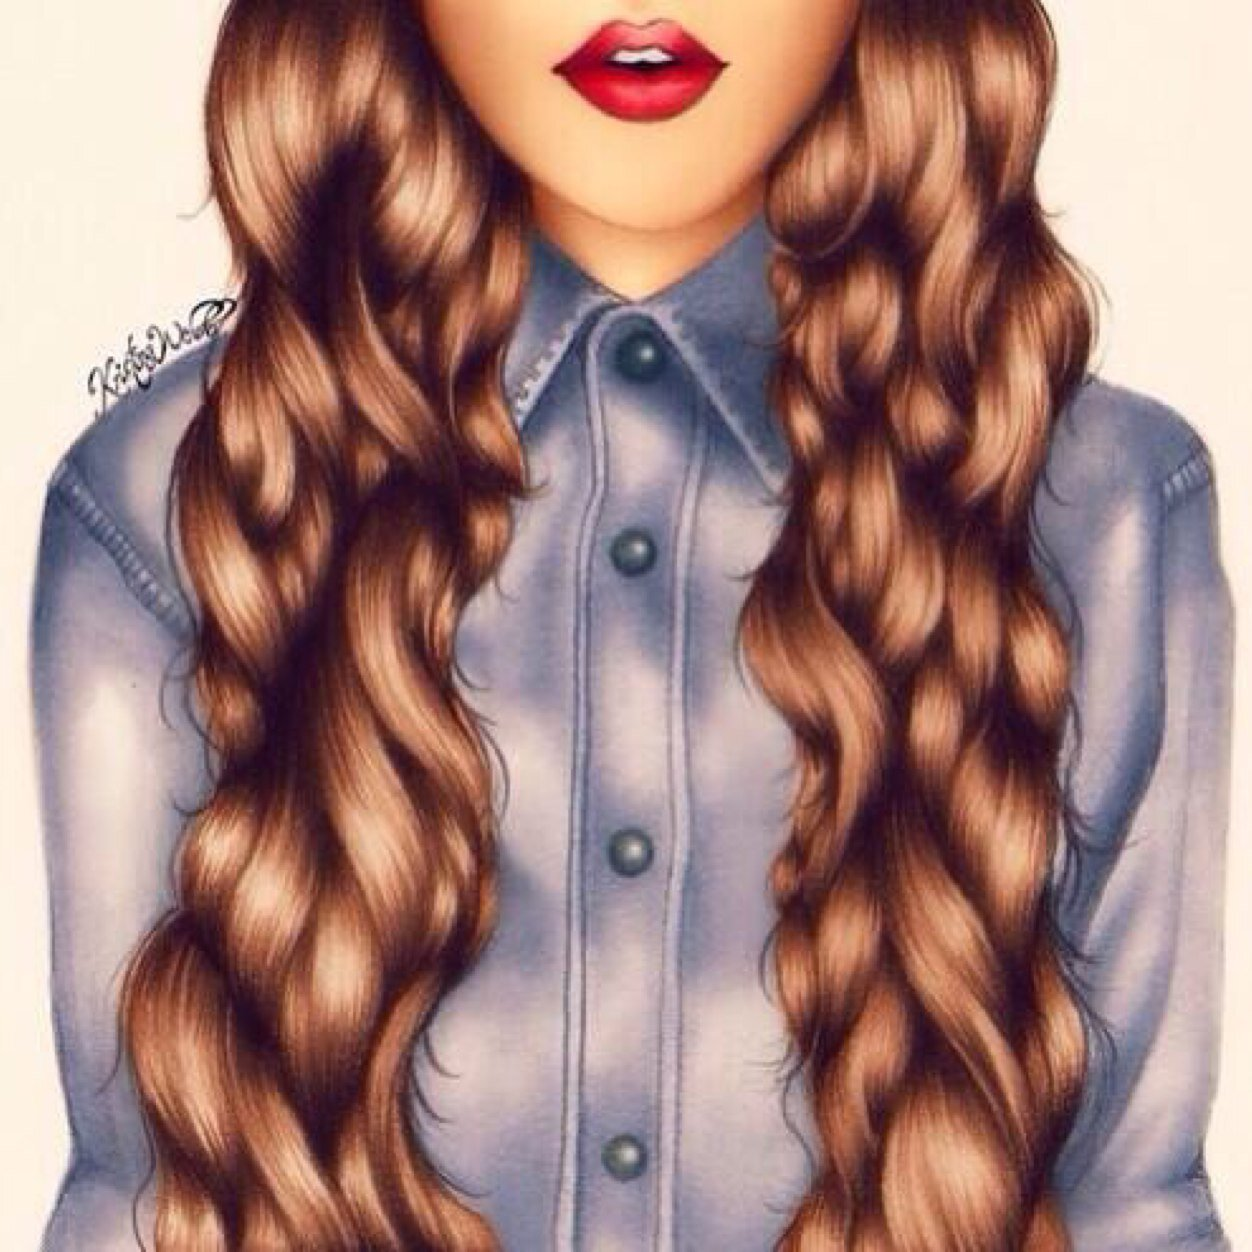 Hairstyles For Long Hair Drawing : Cute Hairstyles ? (@CuteHairstyIes) Twitter